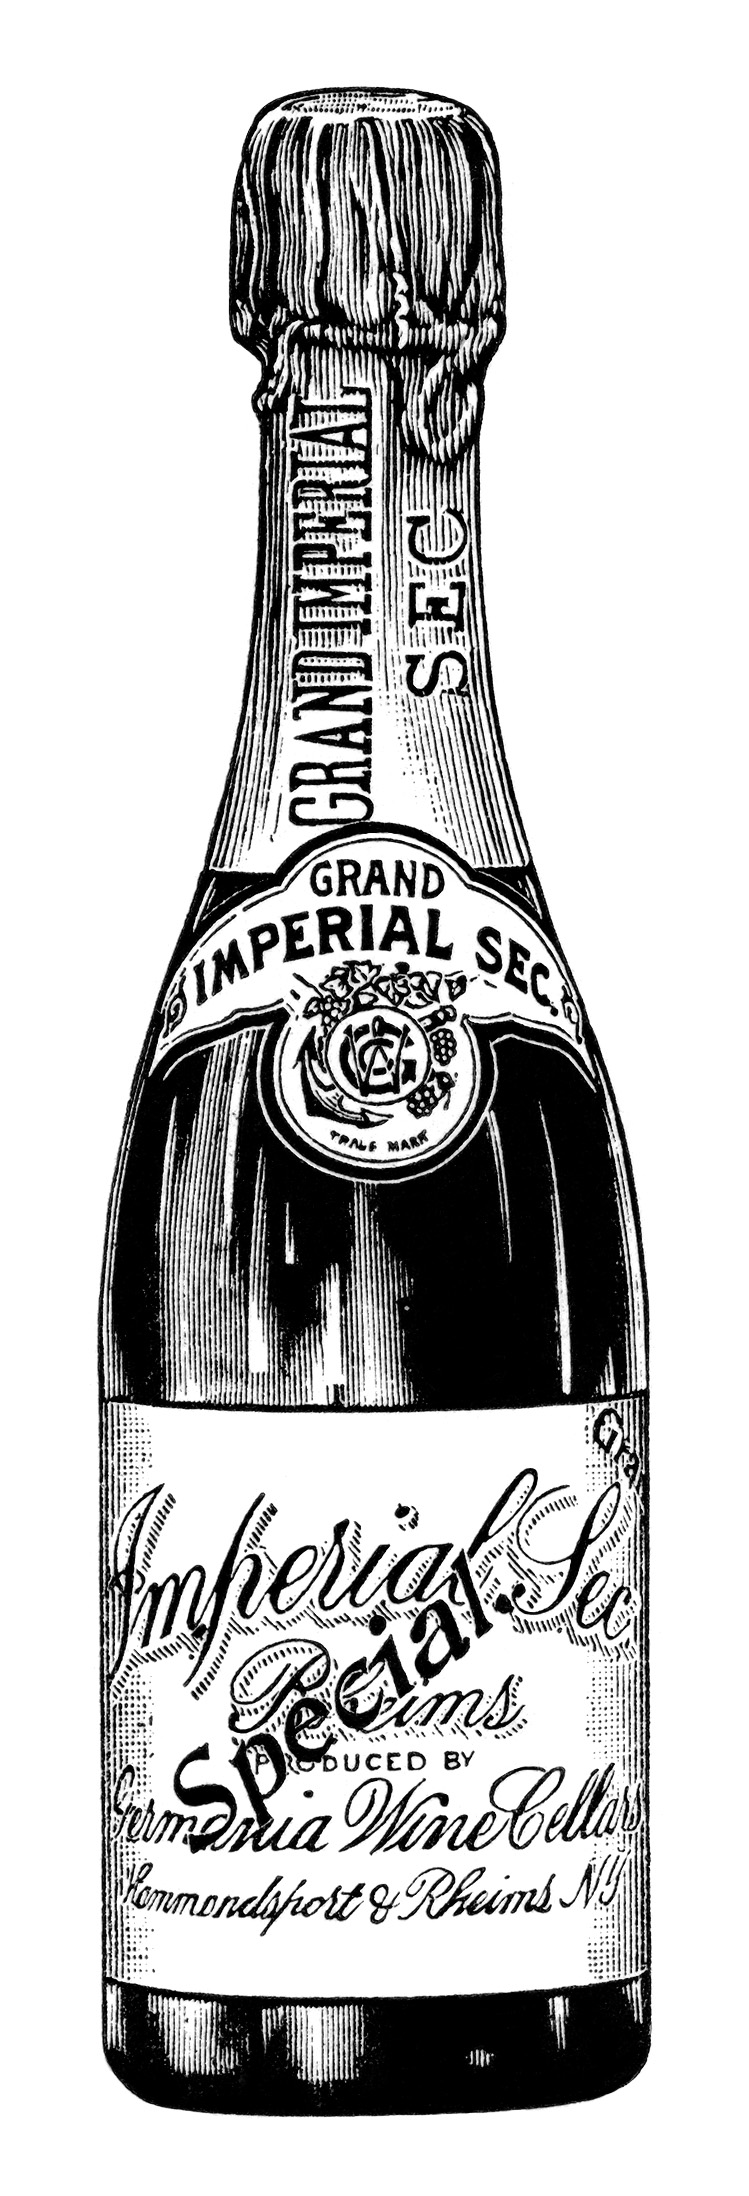 Black And White Clip Art Version Of The Bottle Of Champagne From The